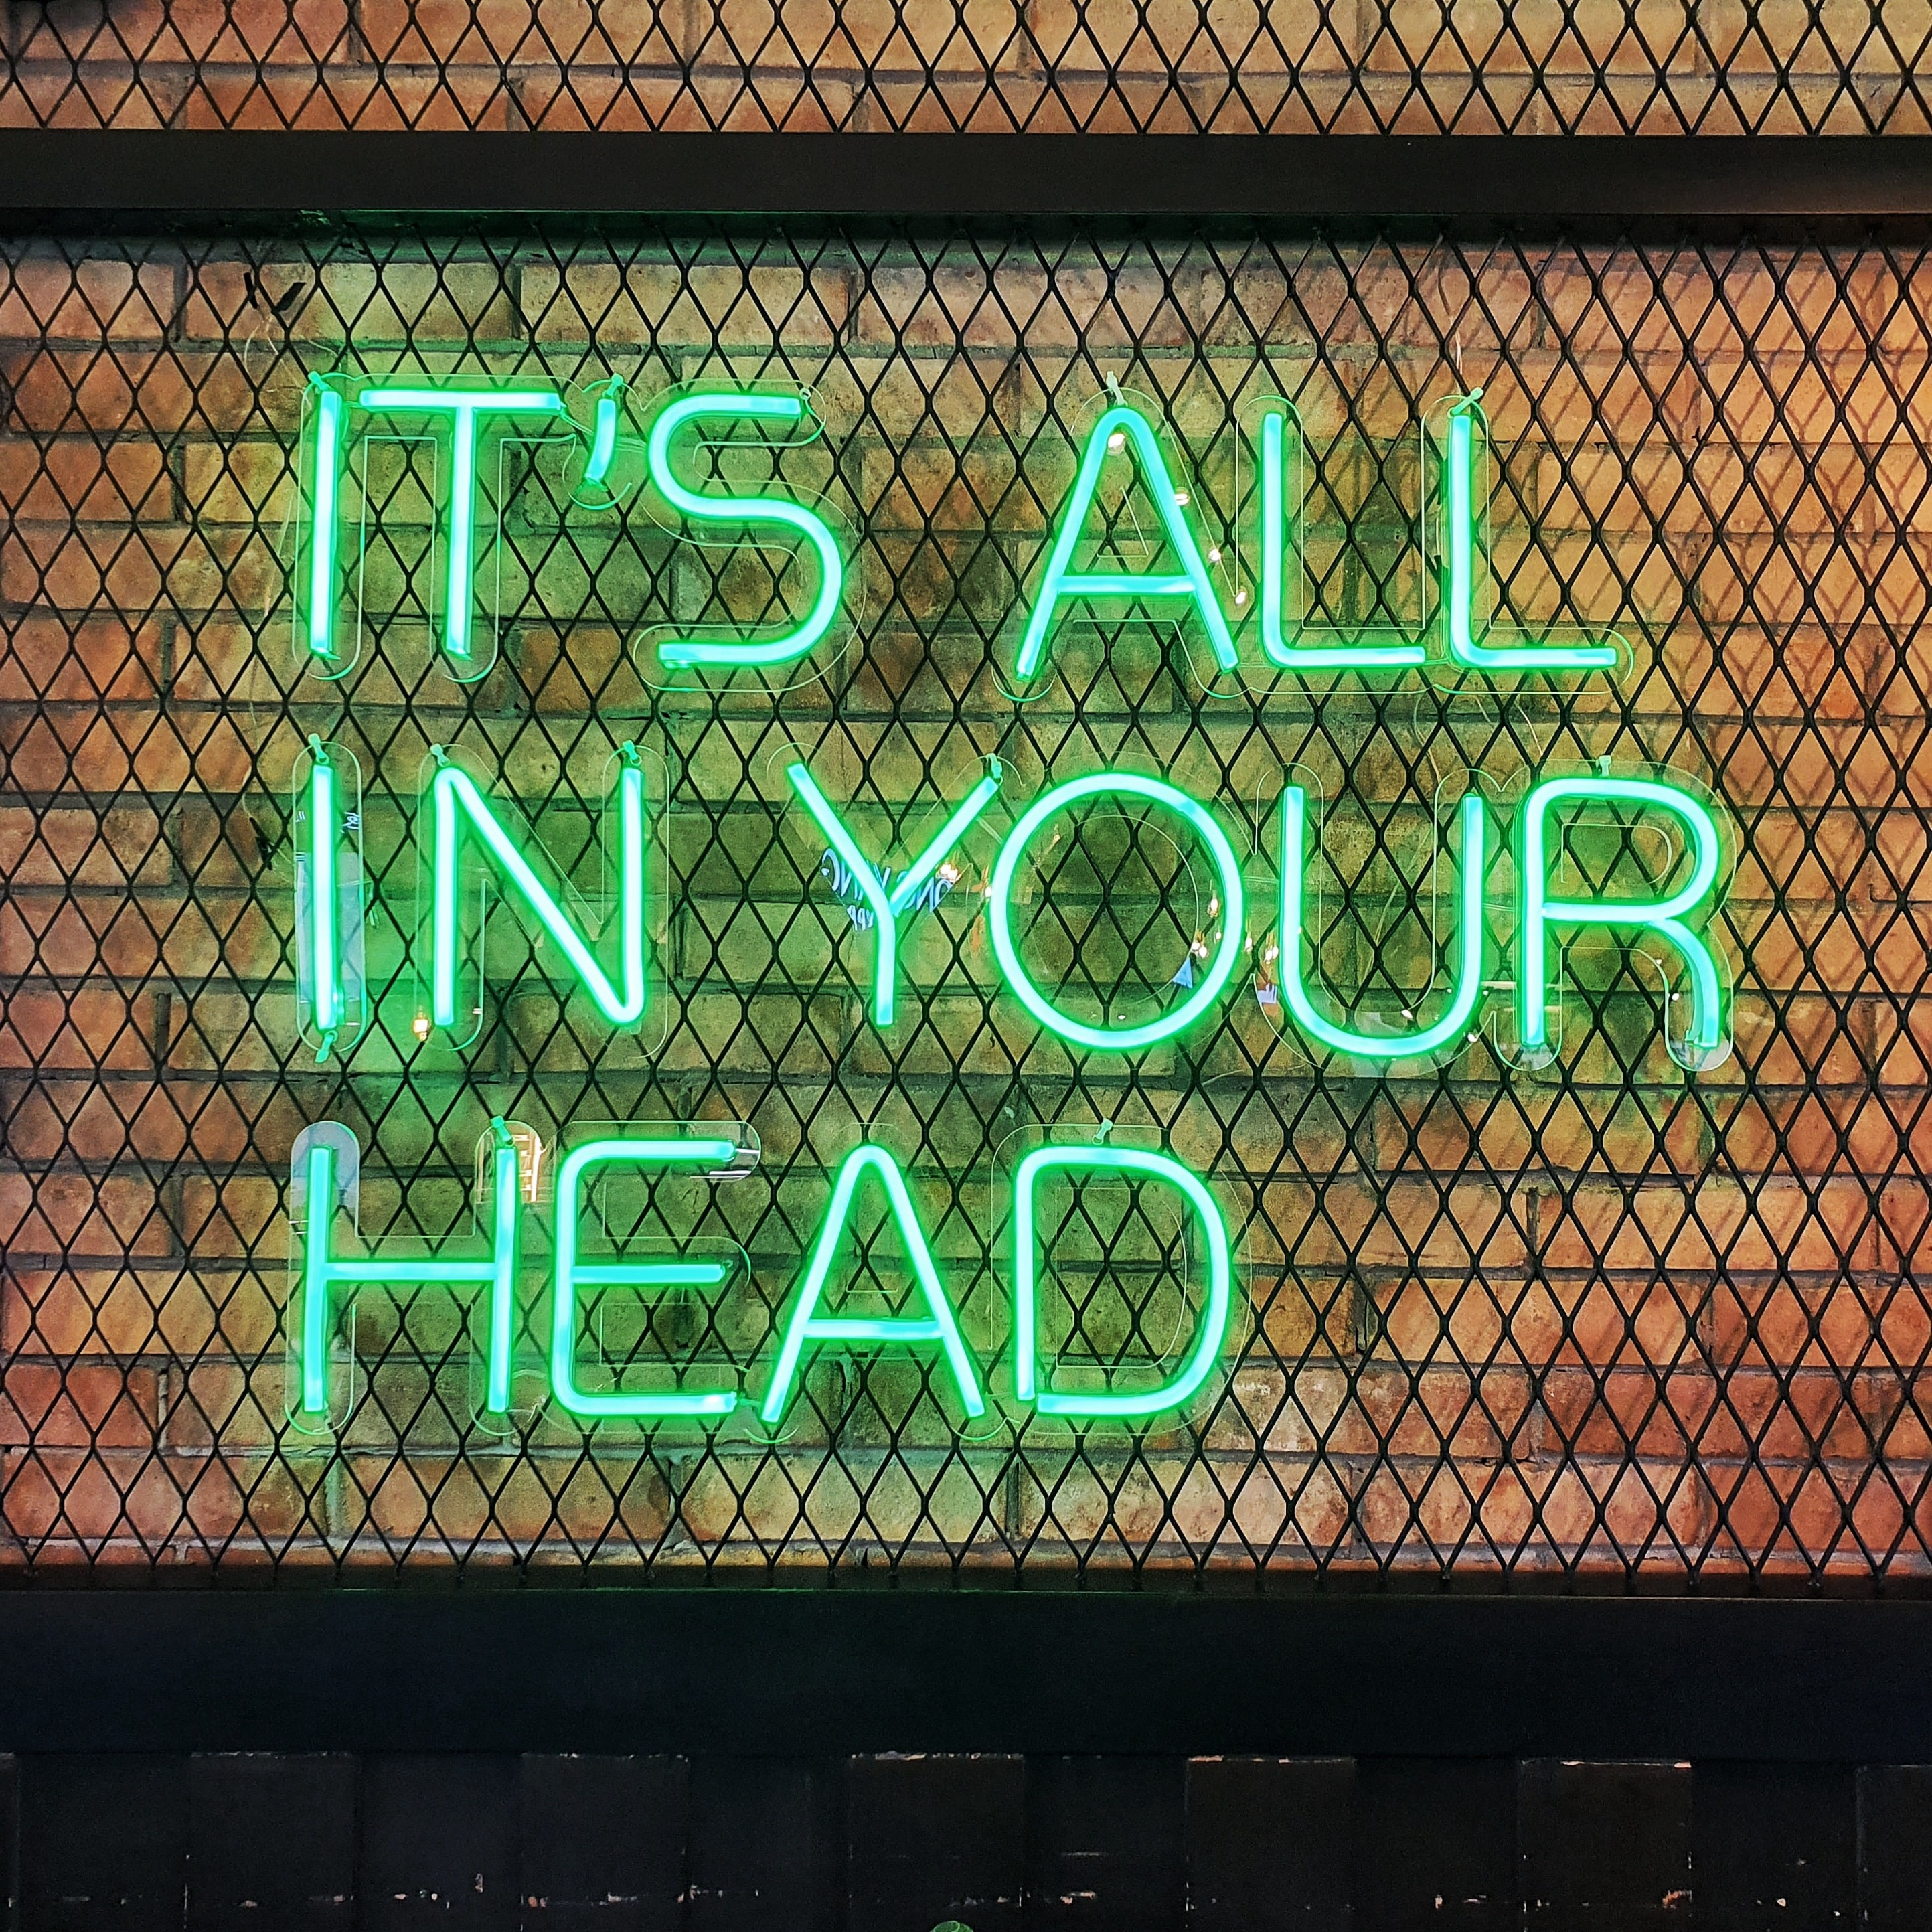 blue and white It's all in your head neon signage—how to stop being negative